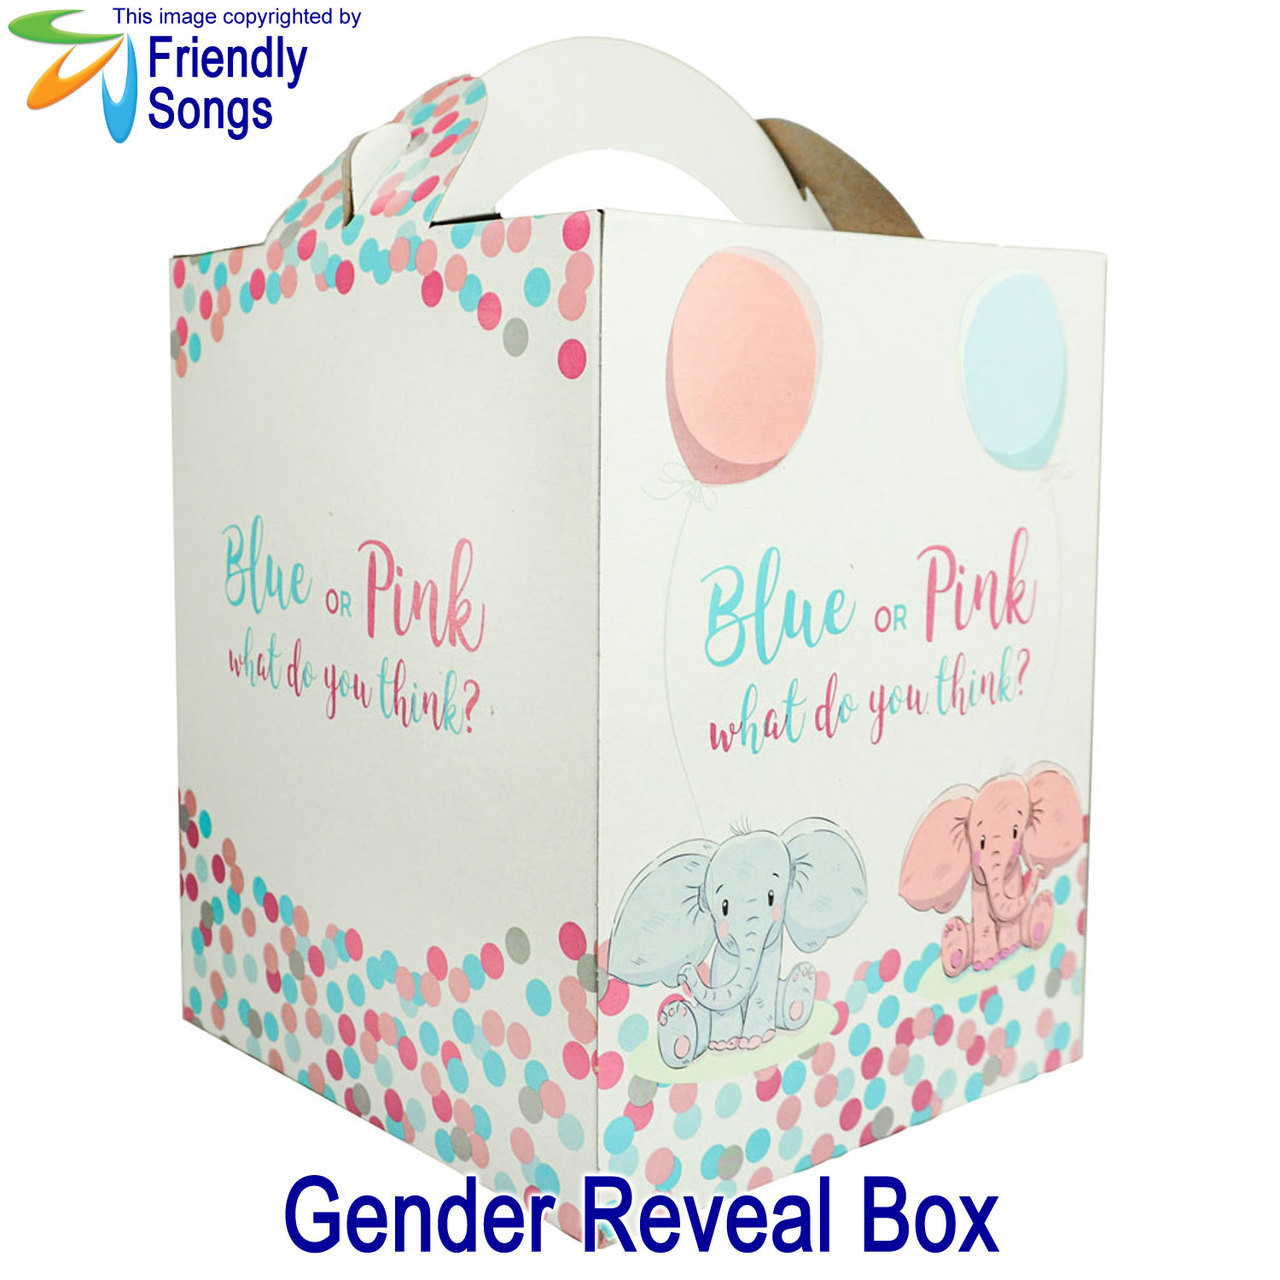 Gender Reveal Box for your Stuffed Animal